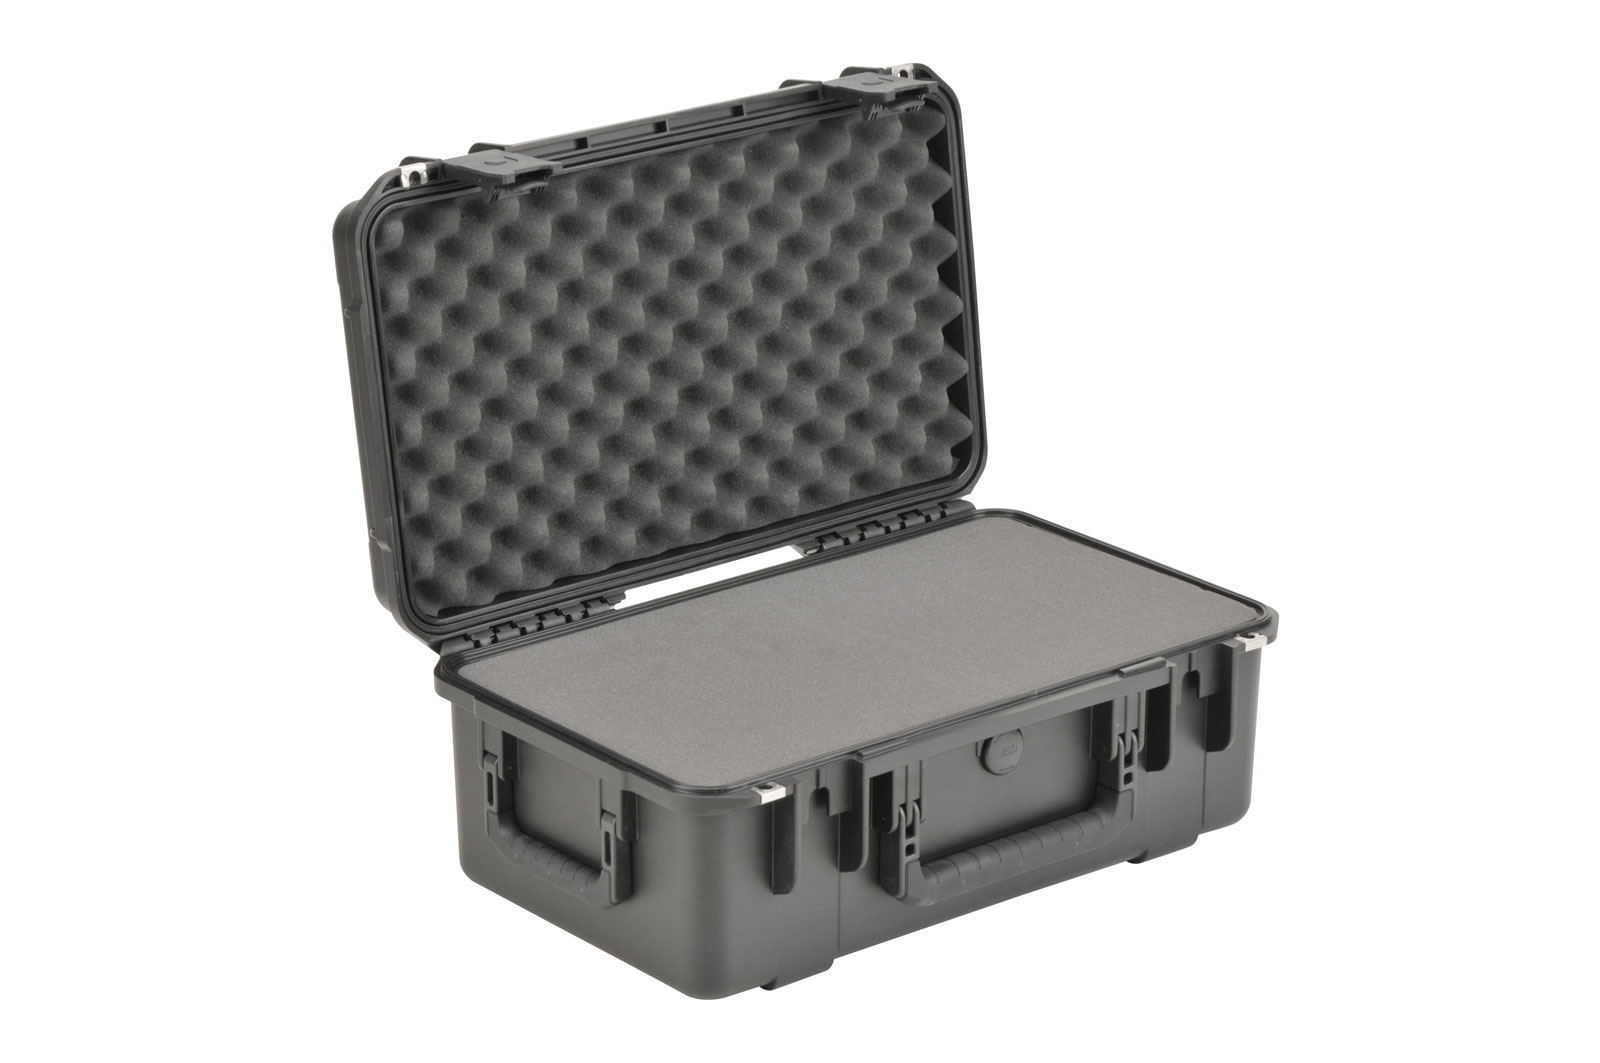 3I-2011-8B-C - UNIVERSAL WATERPROOF CASE 520 X 292 X 203 (153+50) MM EMPTY WITH CUBED FOAM